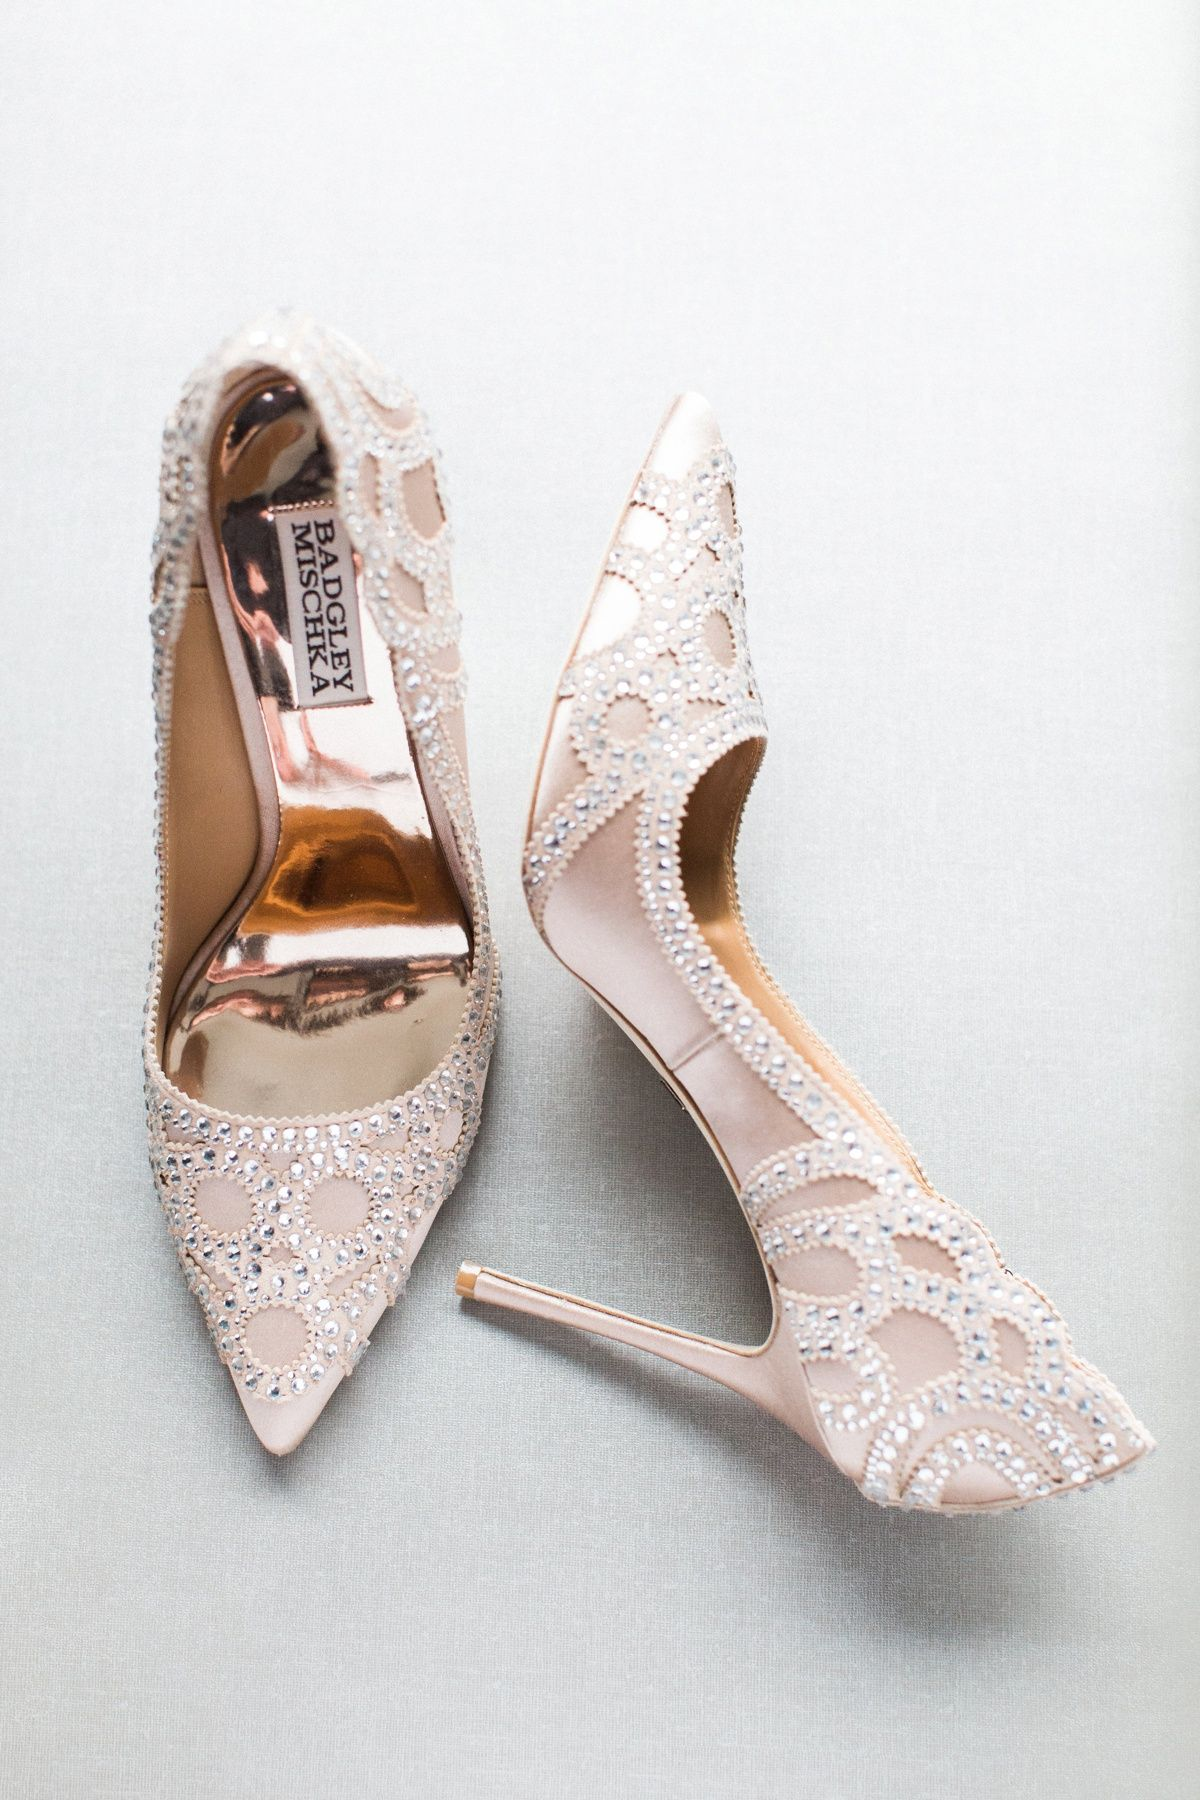 Steal Worthy Bridal Shoes From Pittsburgh Brides Bridal Shoes Unique Wedding Shoes Embellished Wedding Shoes